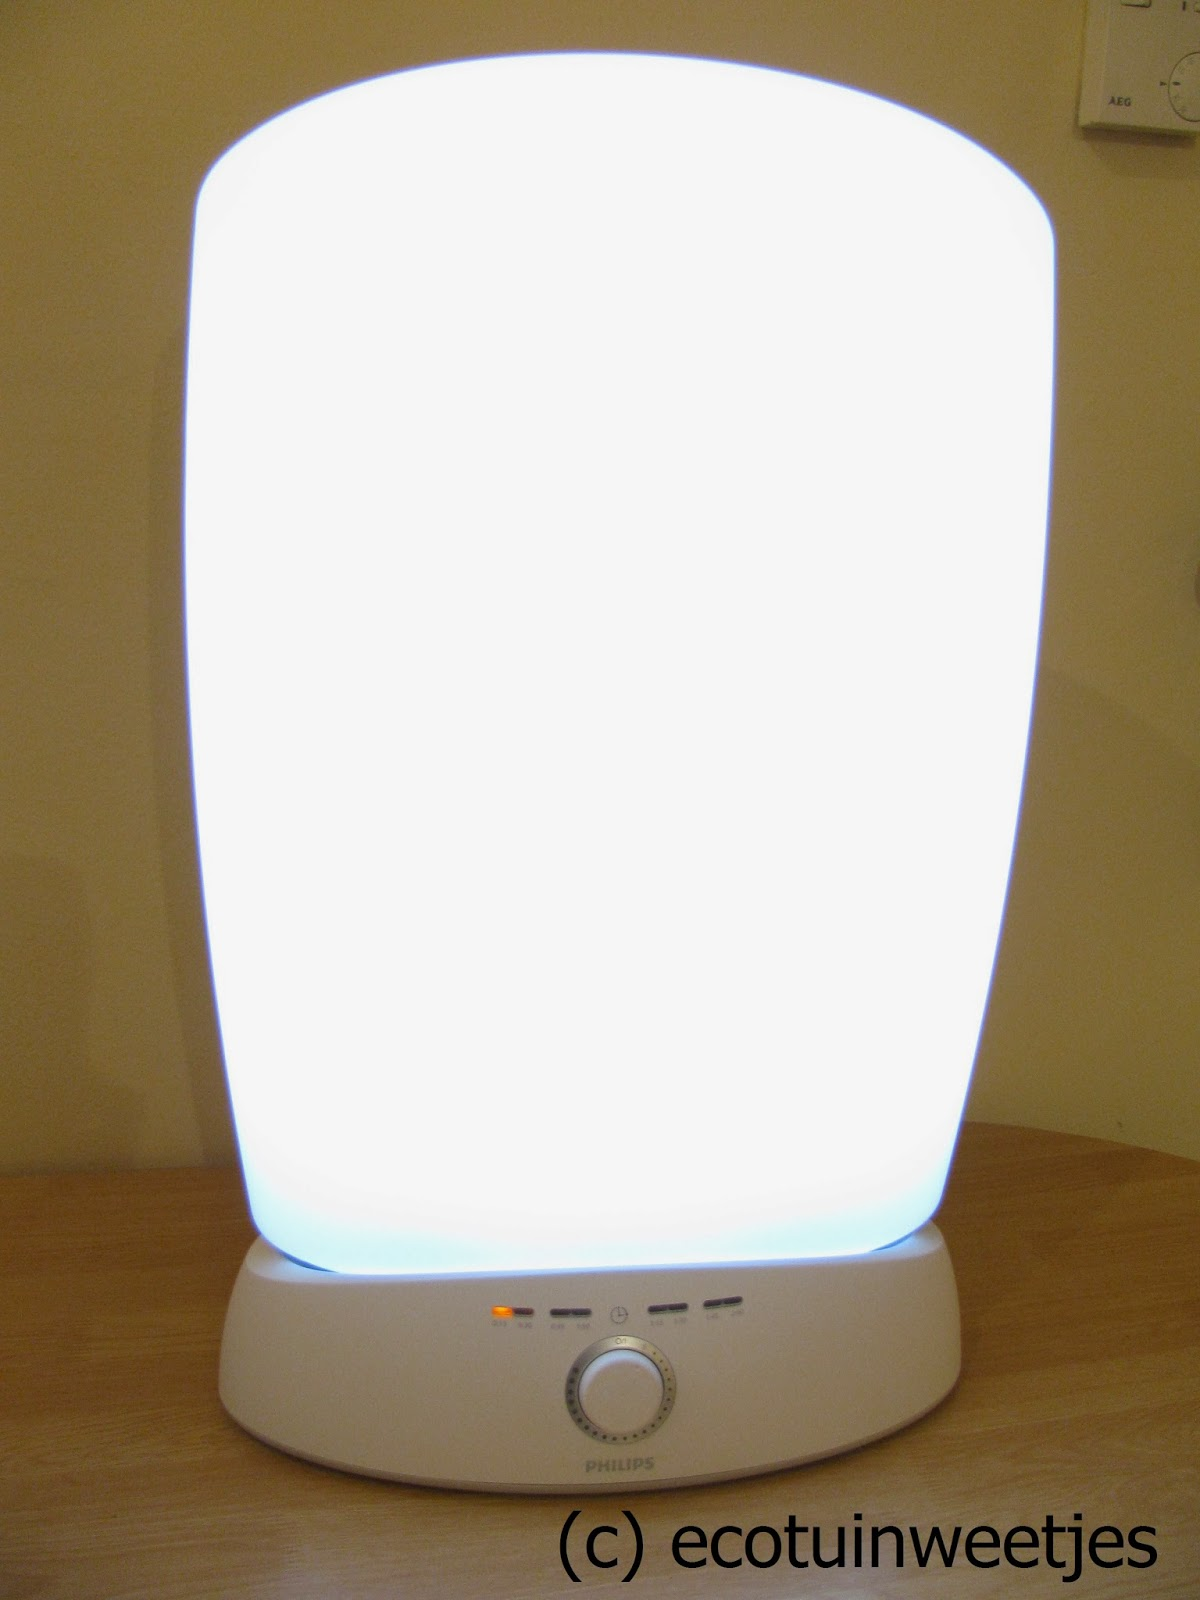 Philips EnergyLight EnergyUp lichttherapie Wake-Up light